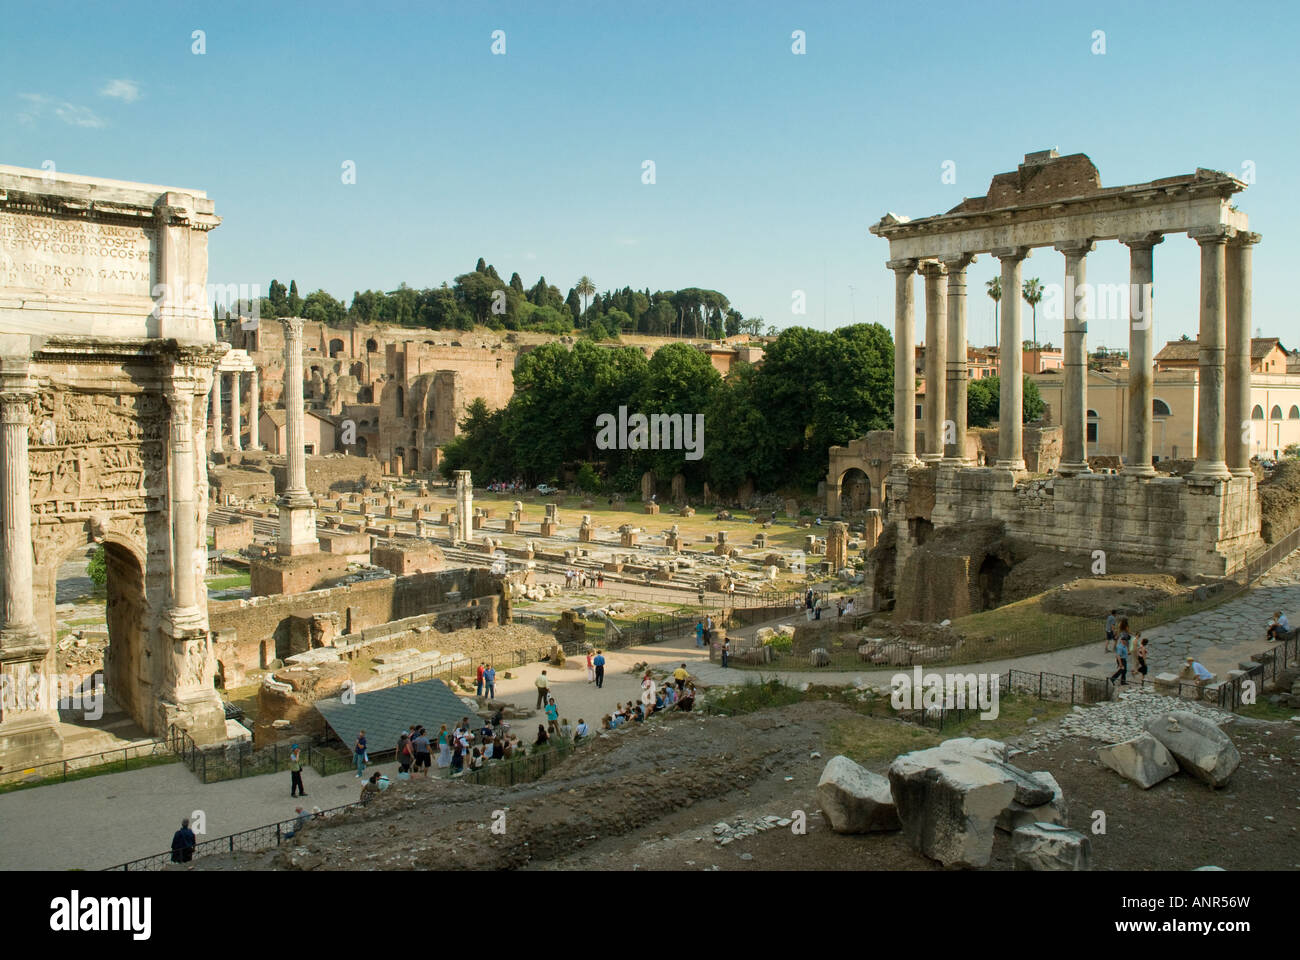 The Arch of Septimus Severus, Column of Phocas and Basilica Julia looking towards the Palintine in The Roman Forum - Stock Image